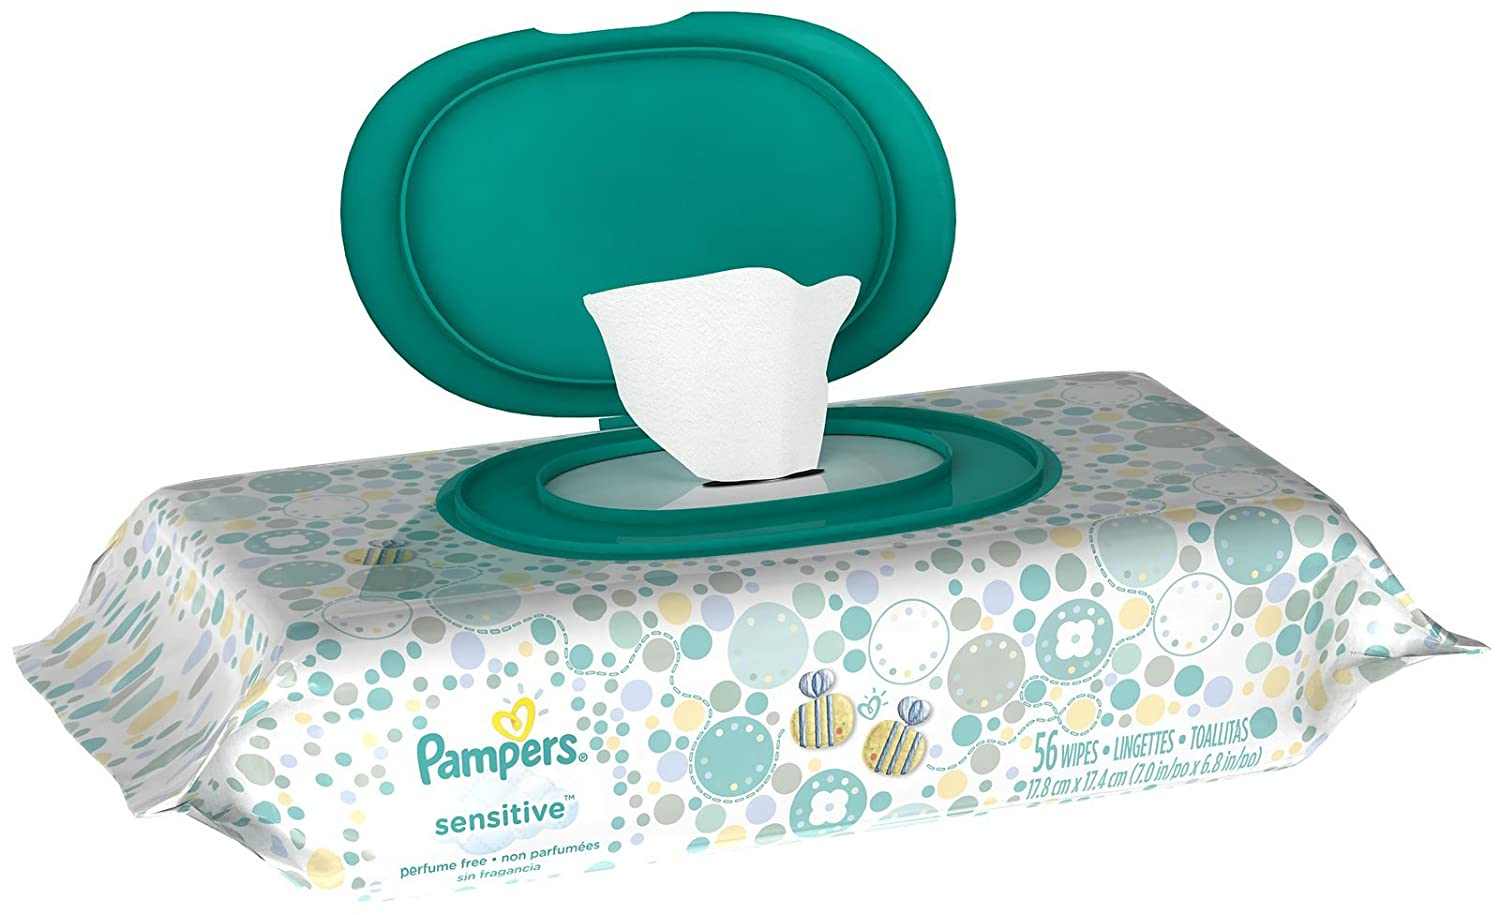 Amazon.com: Pampers Sensitive Baby Wipes, 144 Wipes: Health & Personal Care